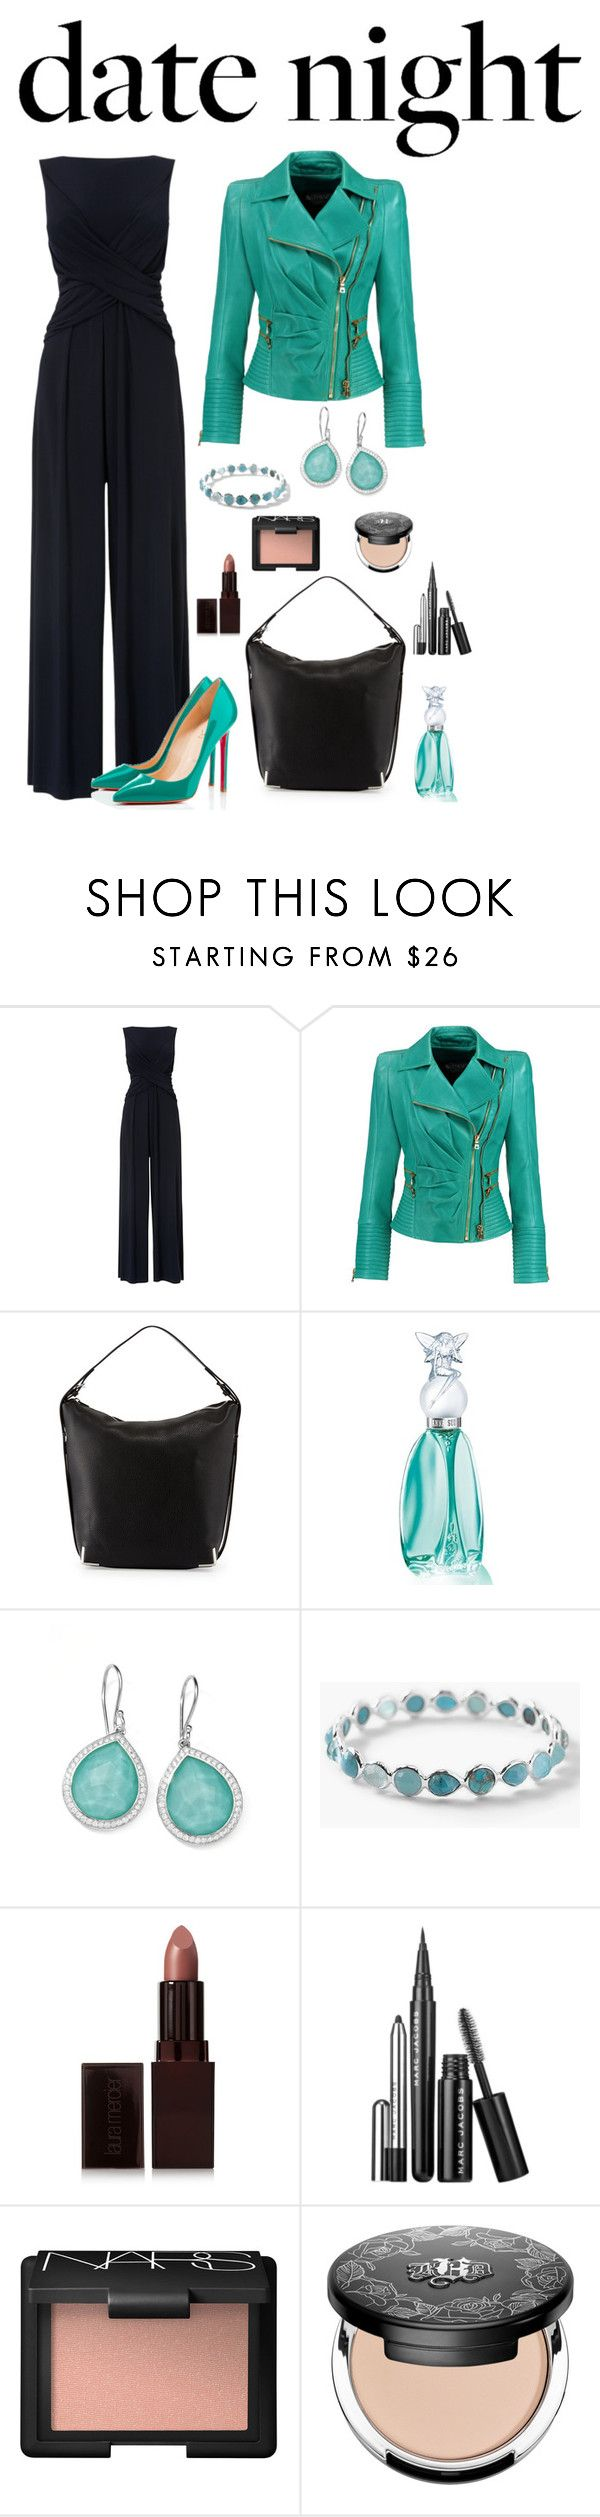 """""""Date Night - Turquoise"""" by sasane ❤ liked on Polyvore featuring Phase Eight, Balmain, Christian Louboutin, Alexander Wang, Anna Sui, Ippolita, Laura Mercier, Marc Jacobs, NARS Cosmetics and Kat Von D"""